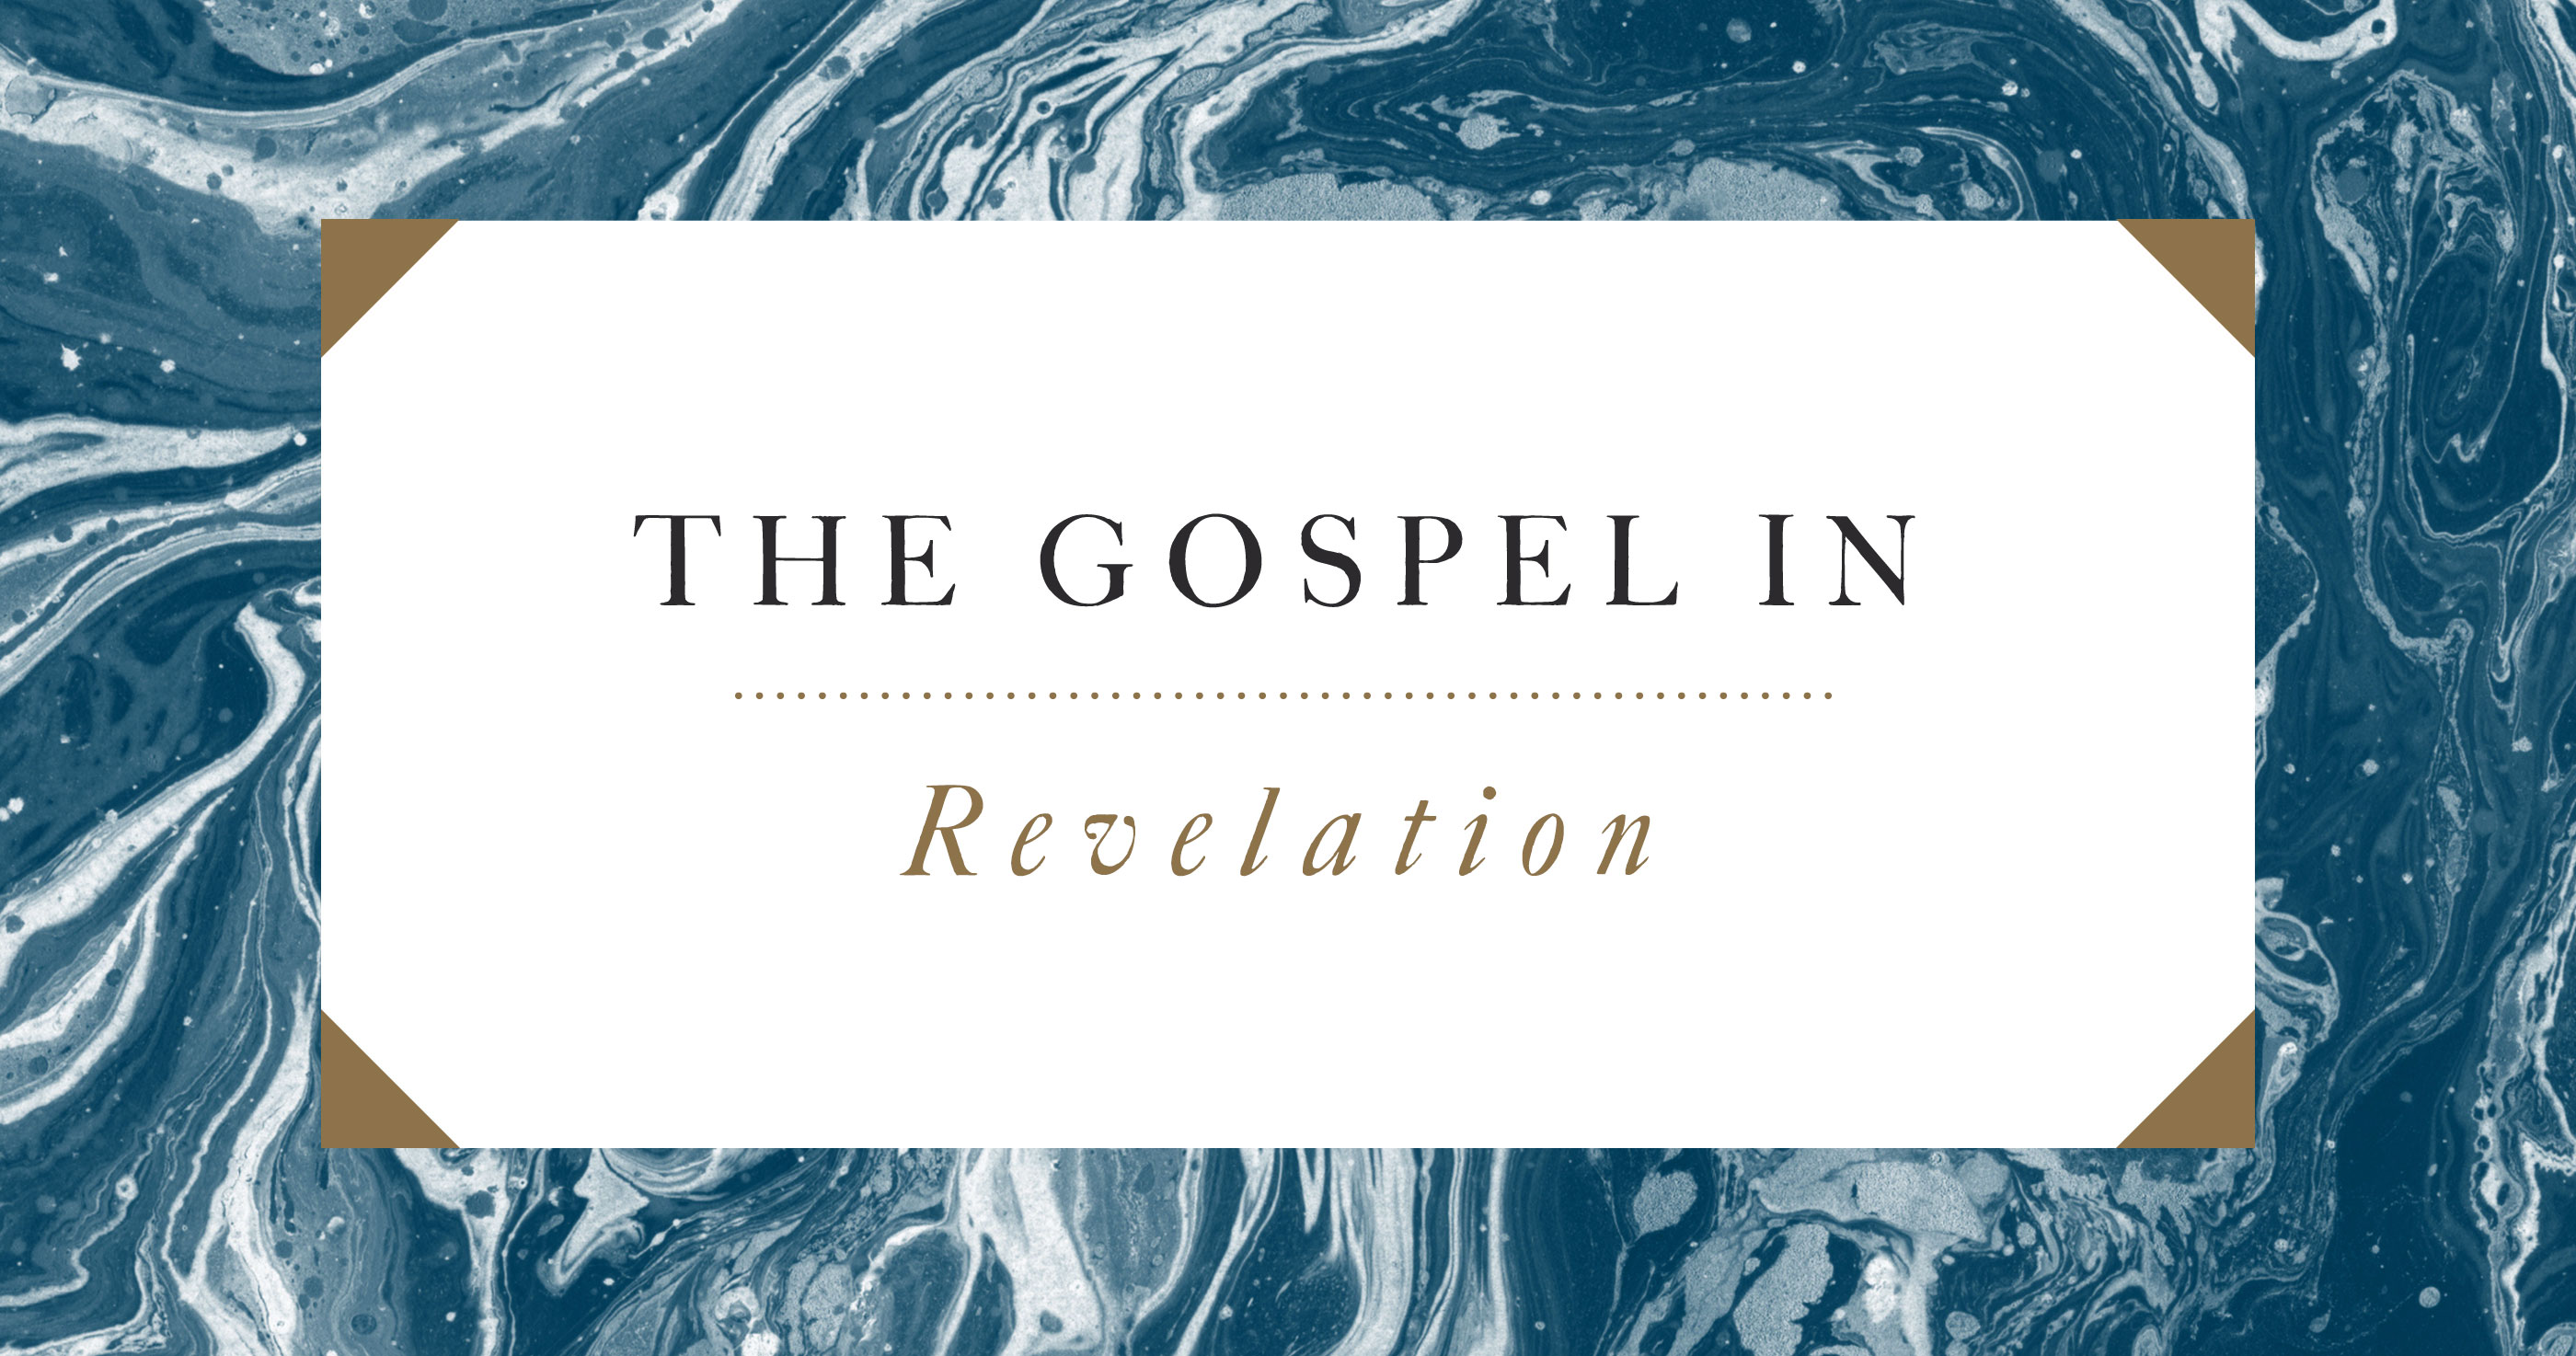 The Gospel in Revelation